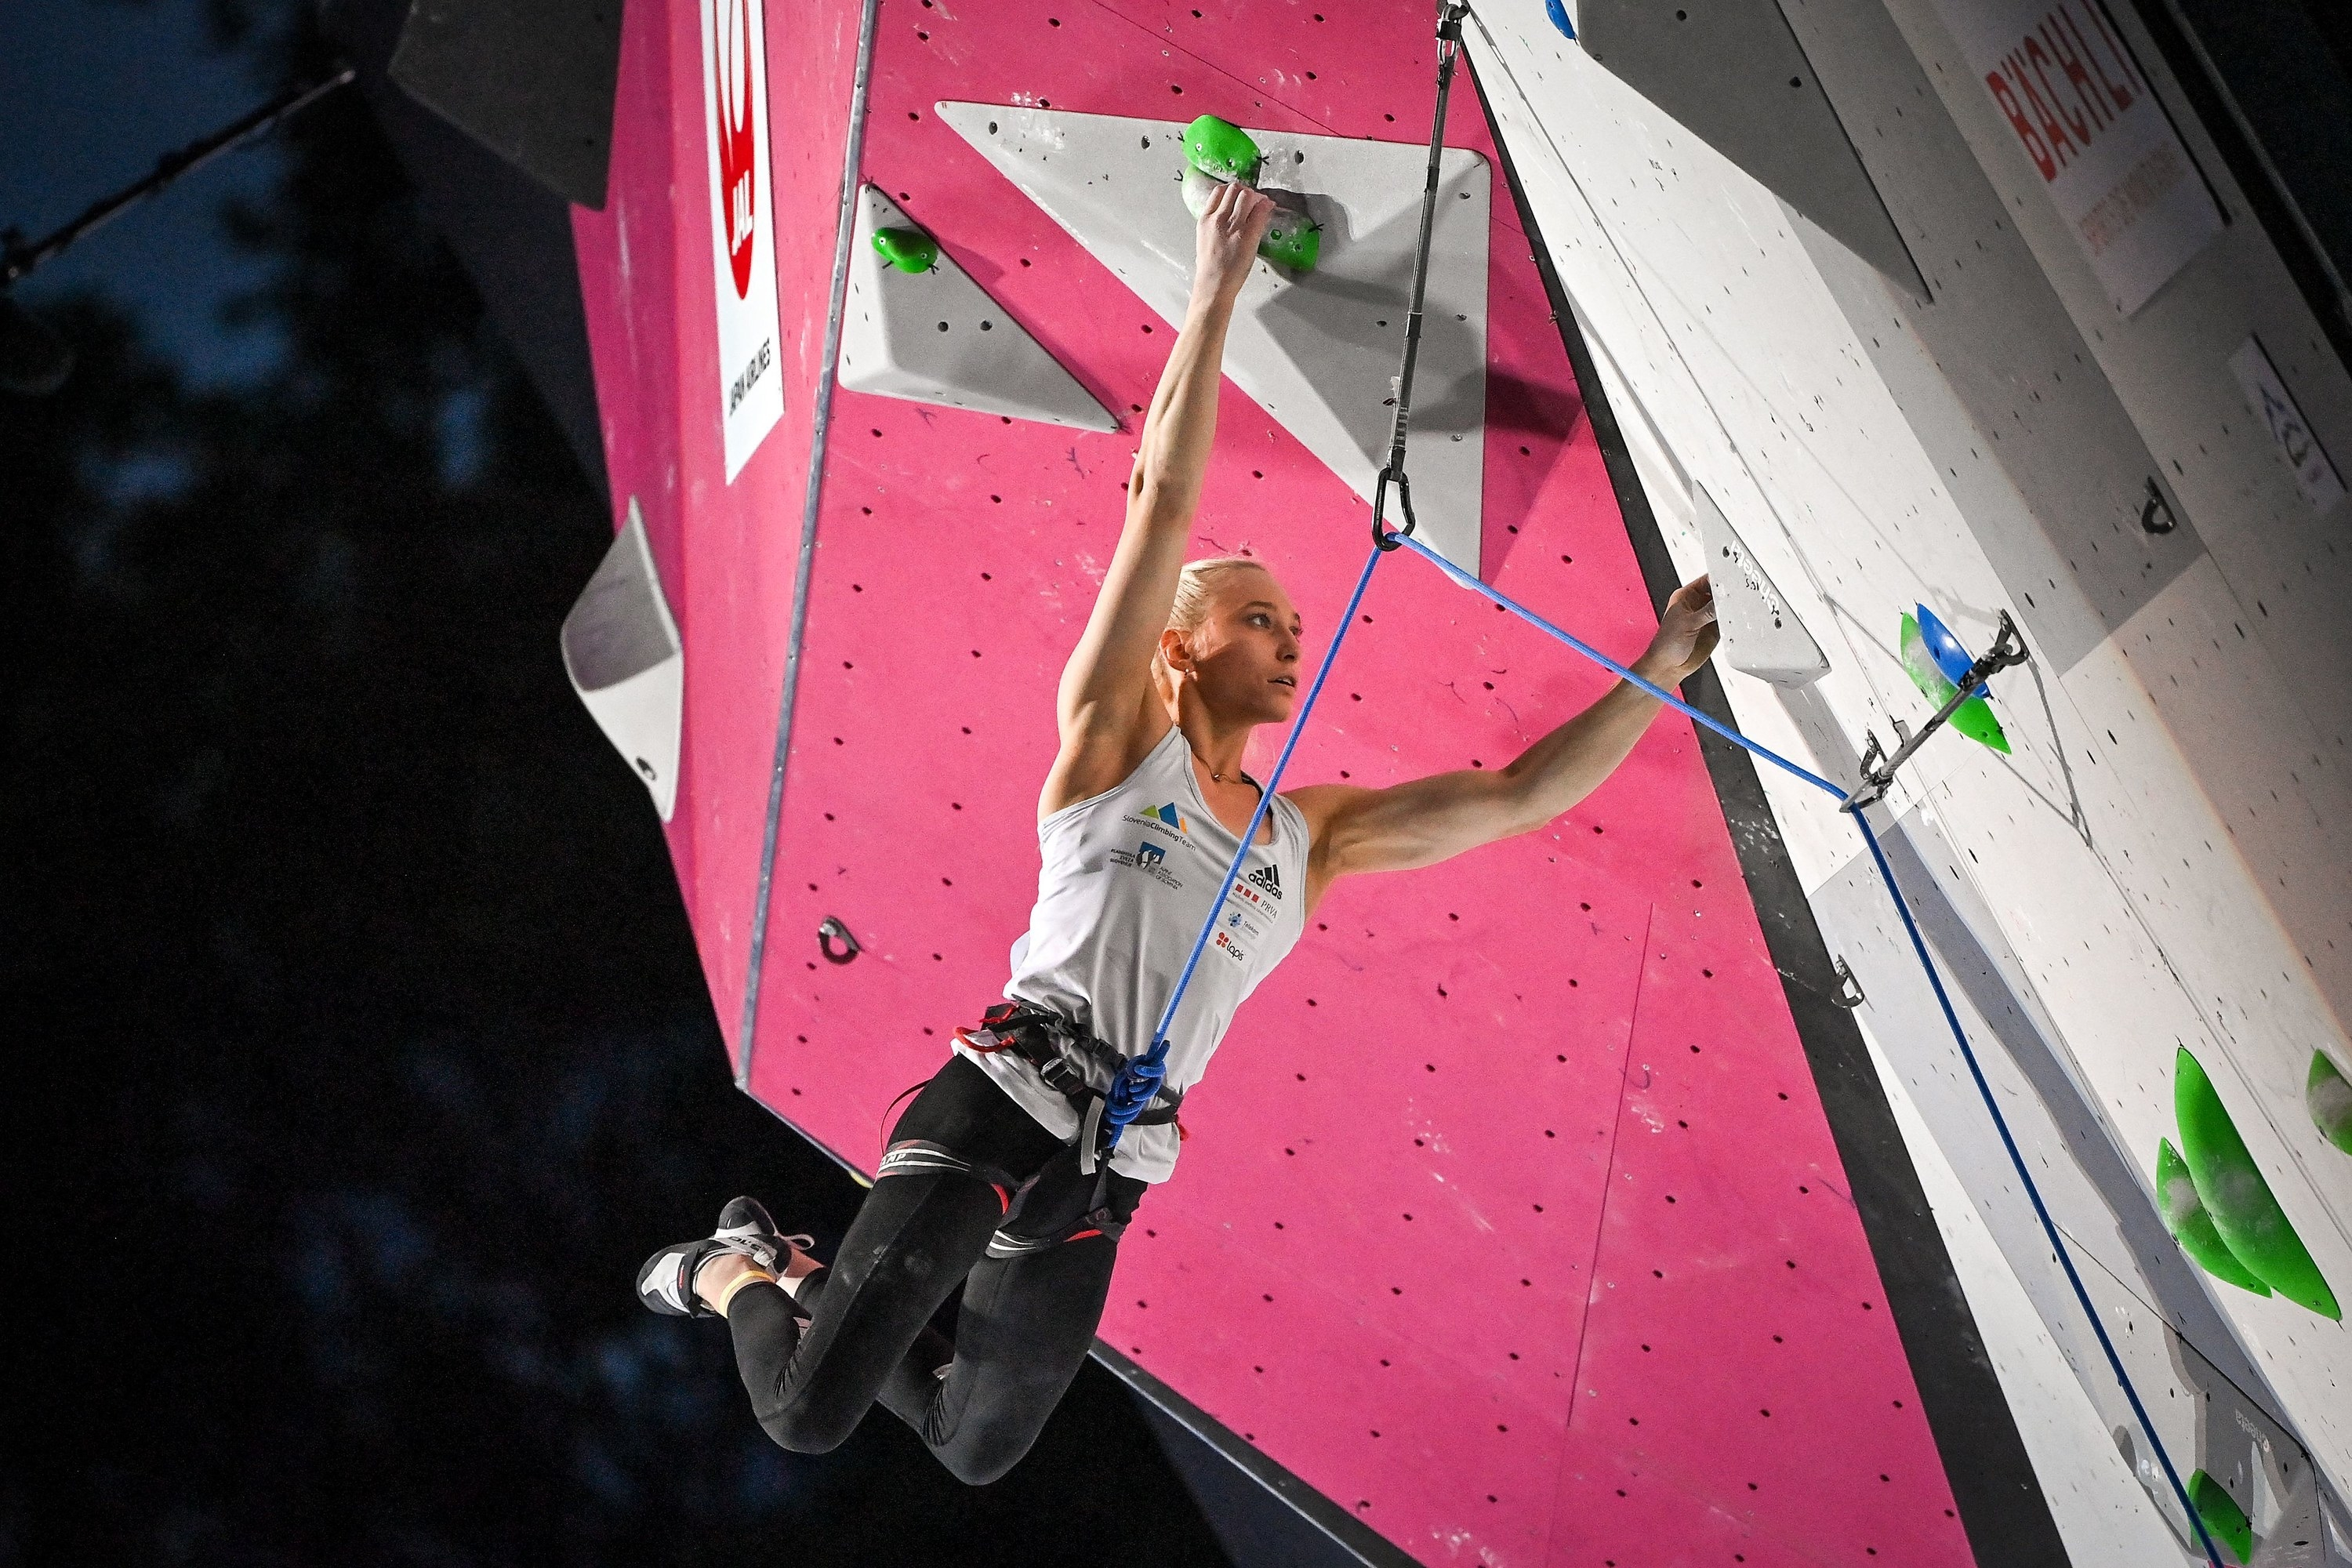 An Olympic rock climber hangs from a wall with a rope securing her